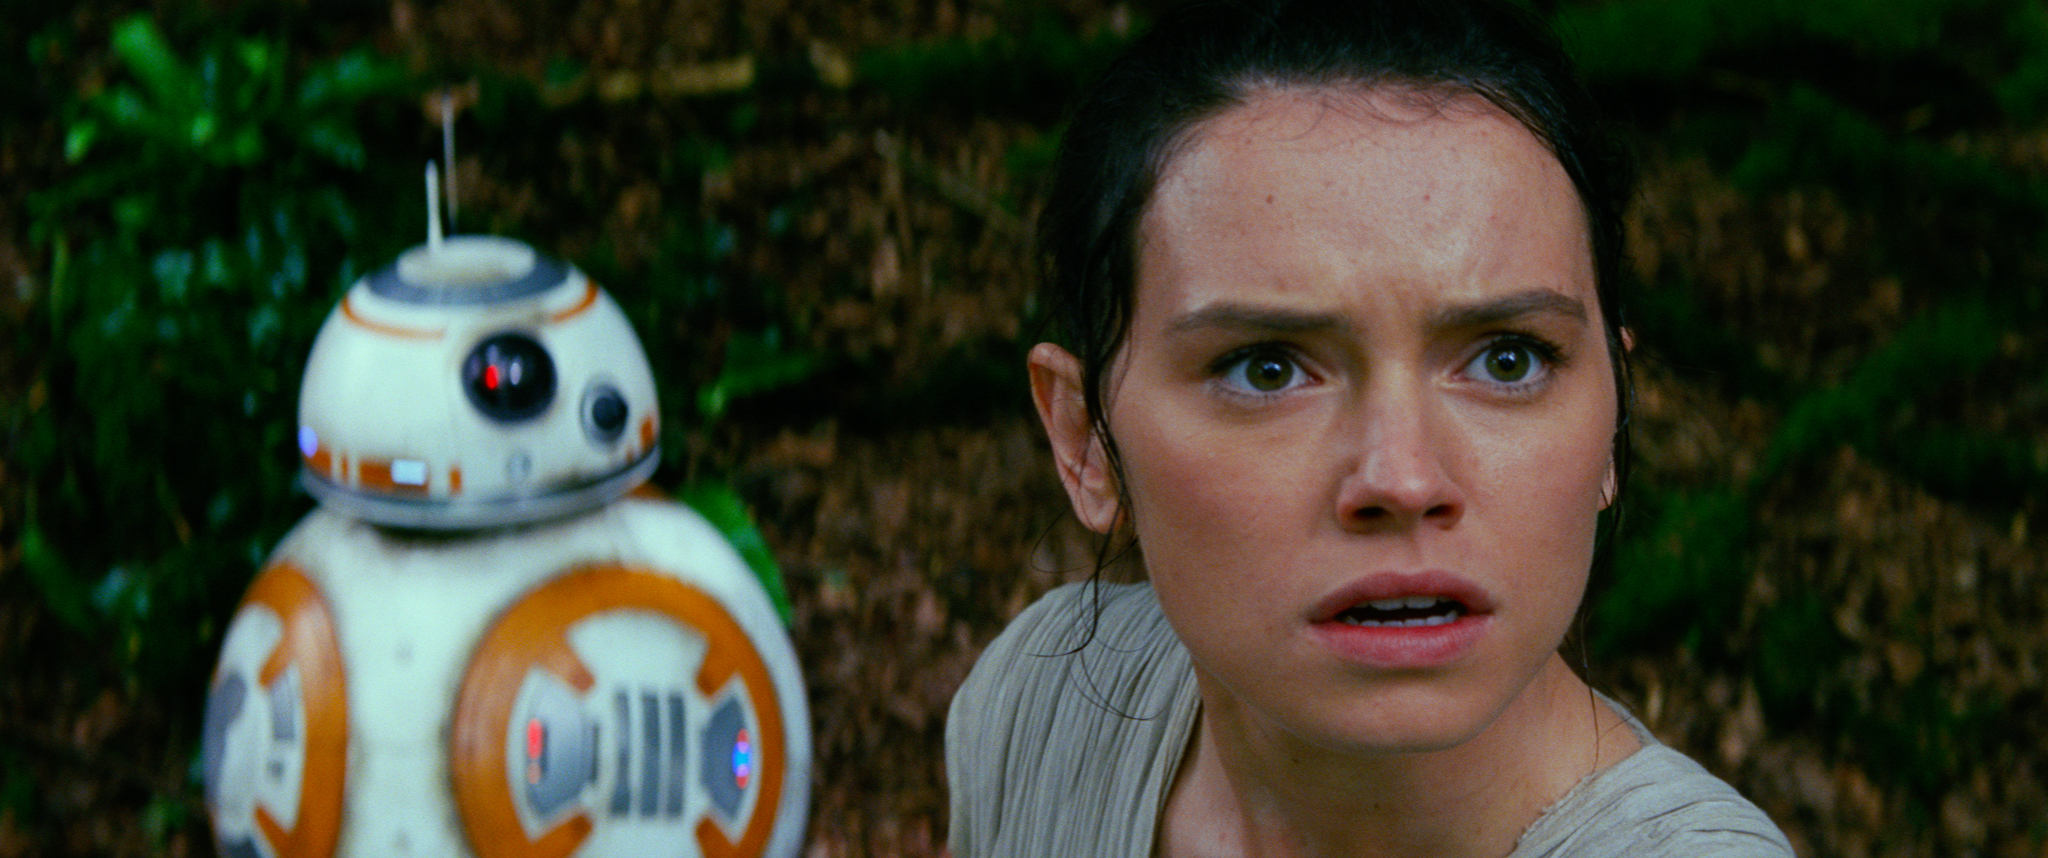 star_wars_the_force_awakens_40043082_st_15_s-high